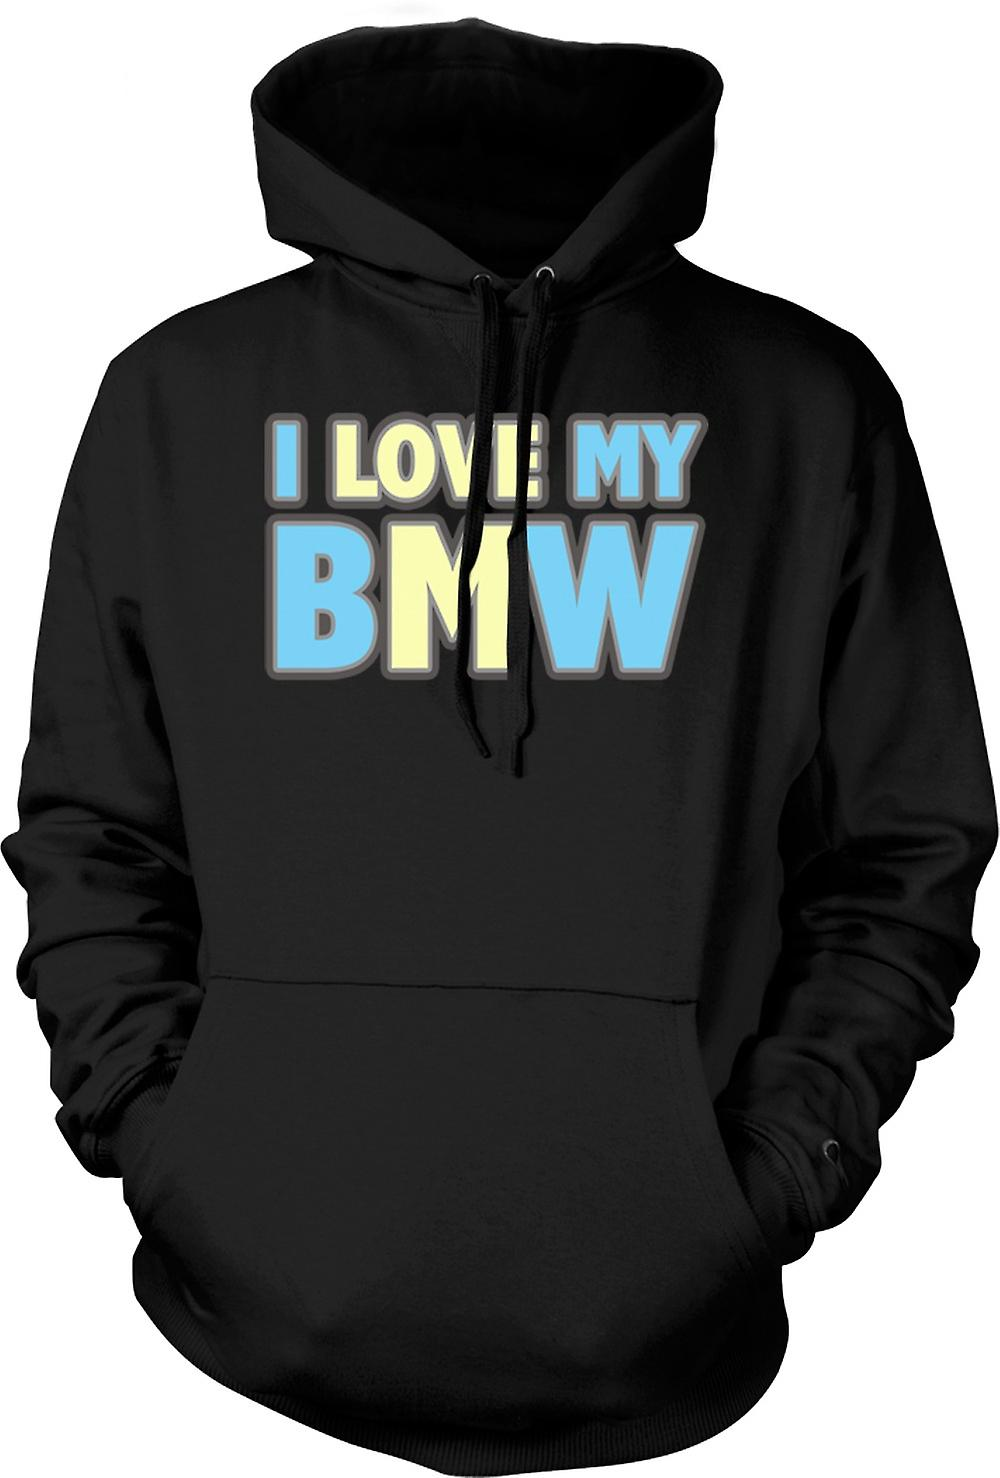 Mens Hoodie - Jag älskar min BMW - Car Enthusiast